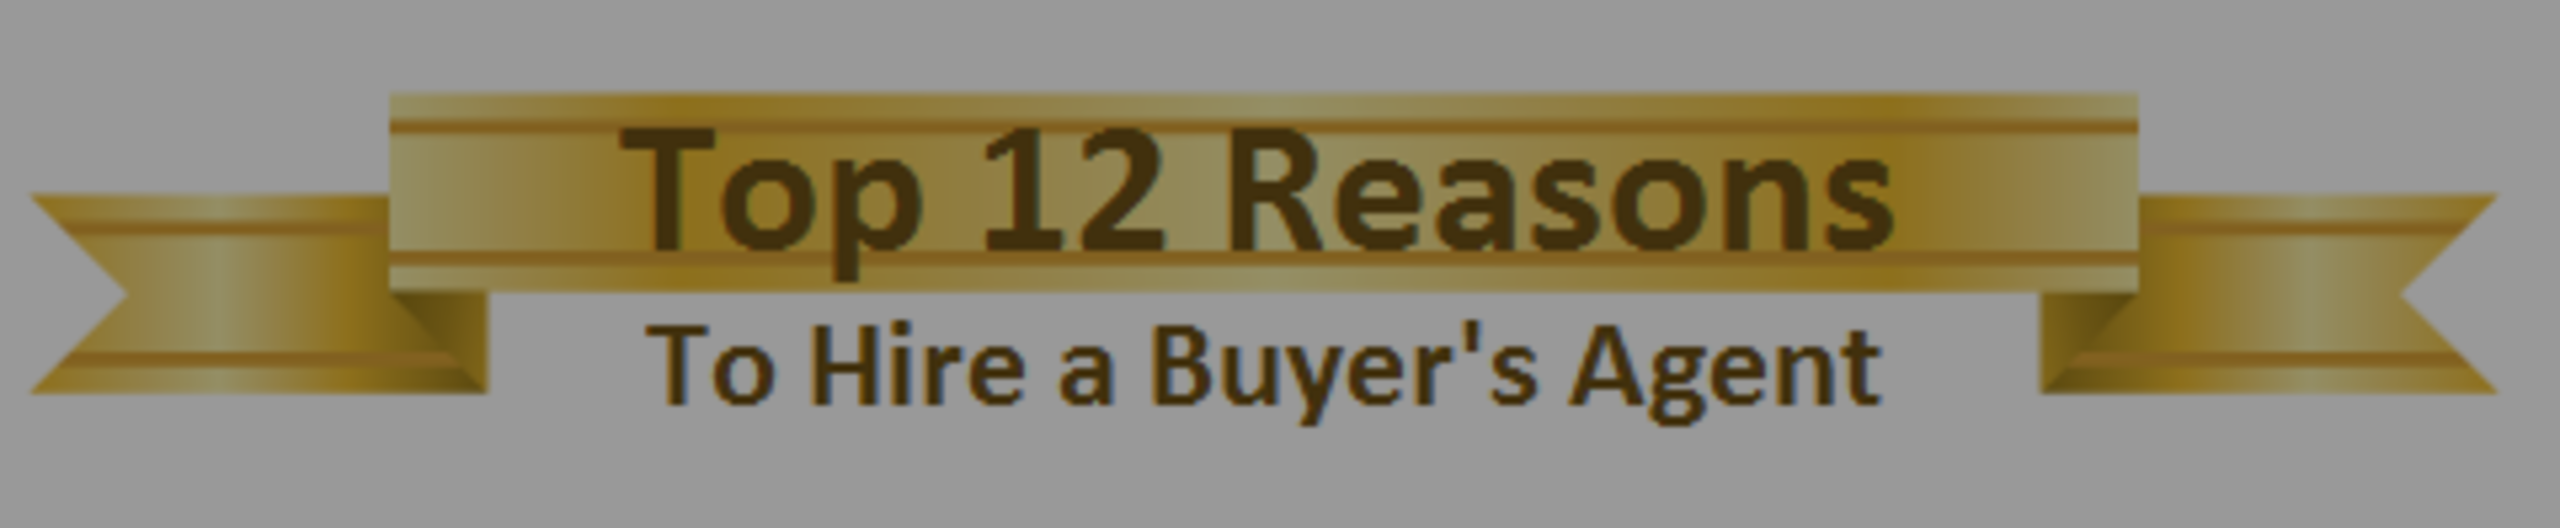 Top Reasons Buyers Need A Real Estate Agent